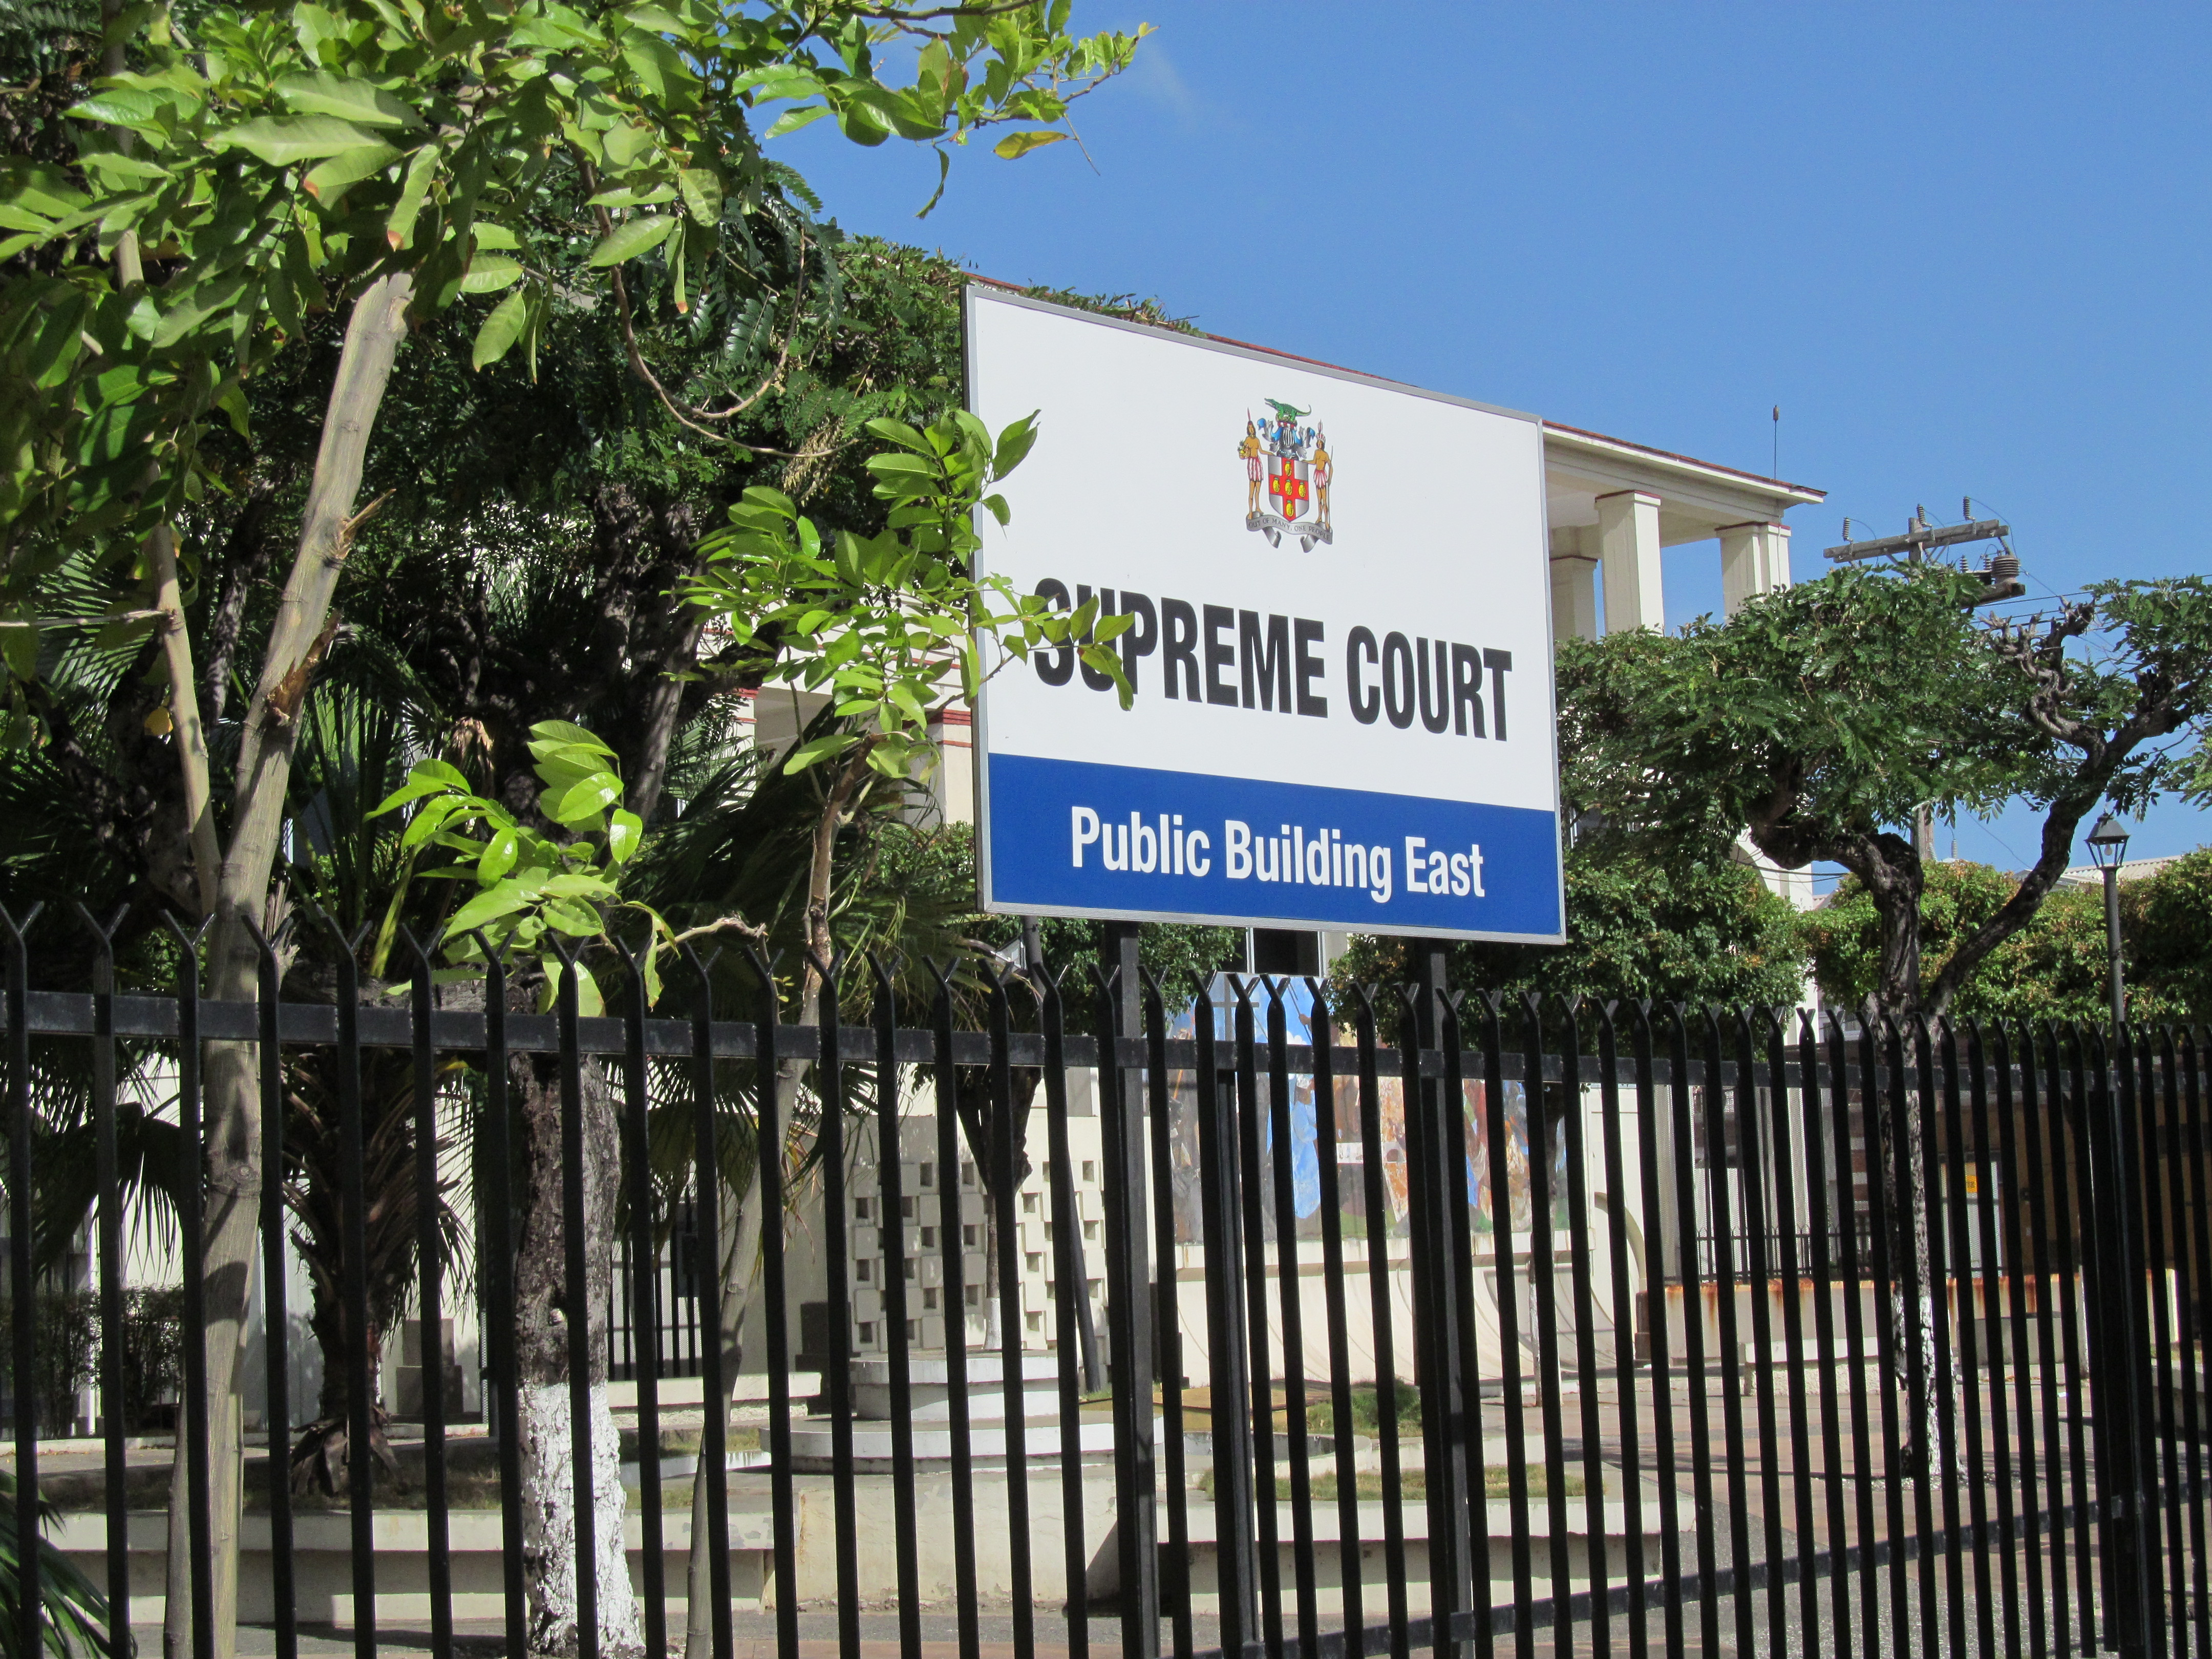 the jamaican court system Jamaica legal system factbook  countries  jamaica  government legal system: common law system based on the english model definition:  in the english common law system, court judges are bound in their decisions in large part by the rules and other doctrines developed - and supplemented over time - by the judges of earlier english courts.